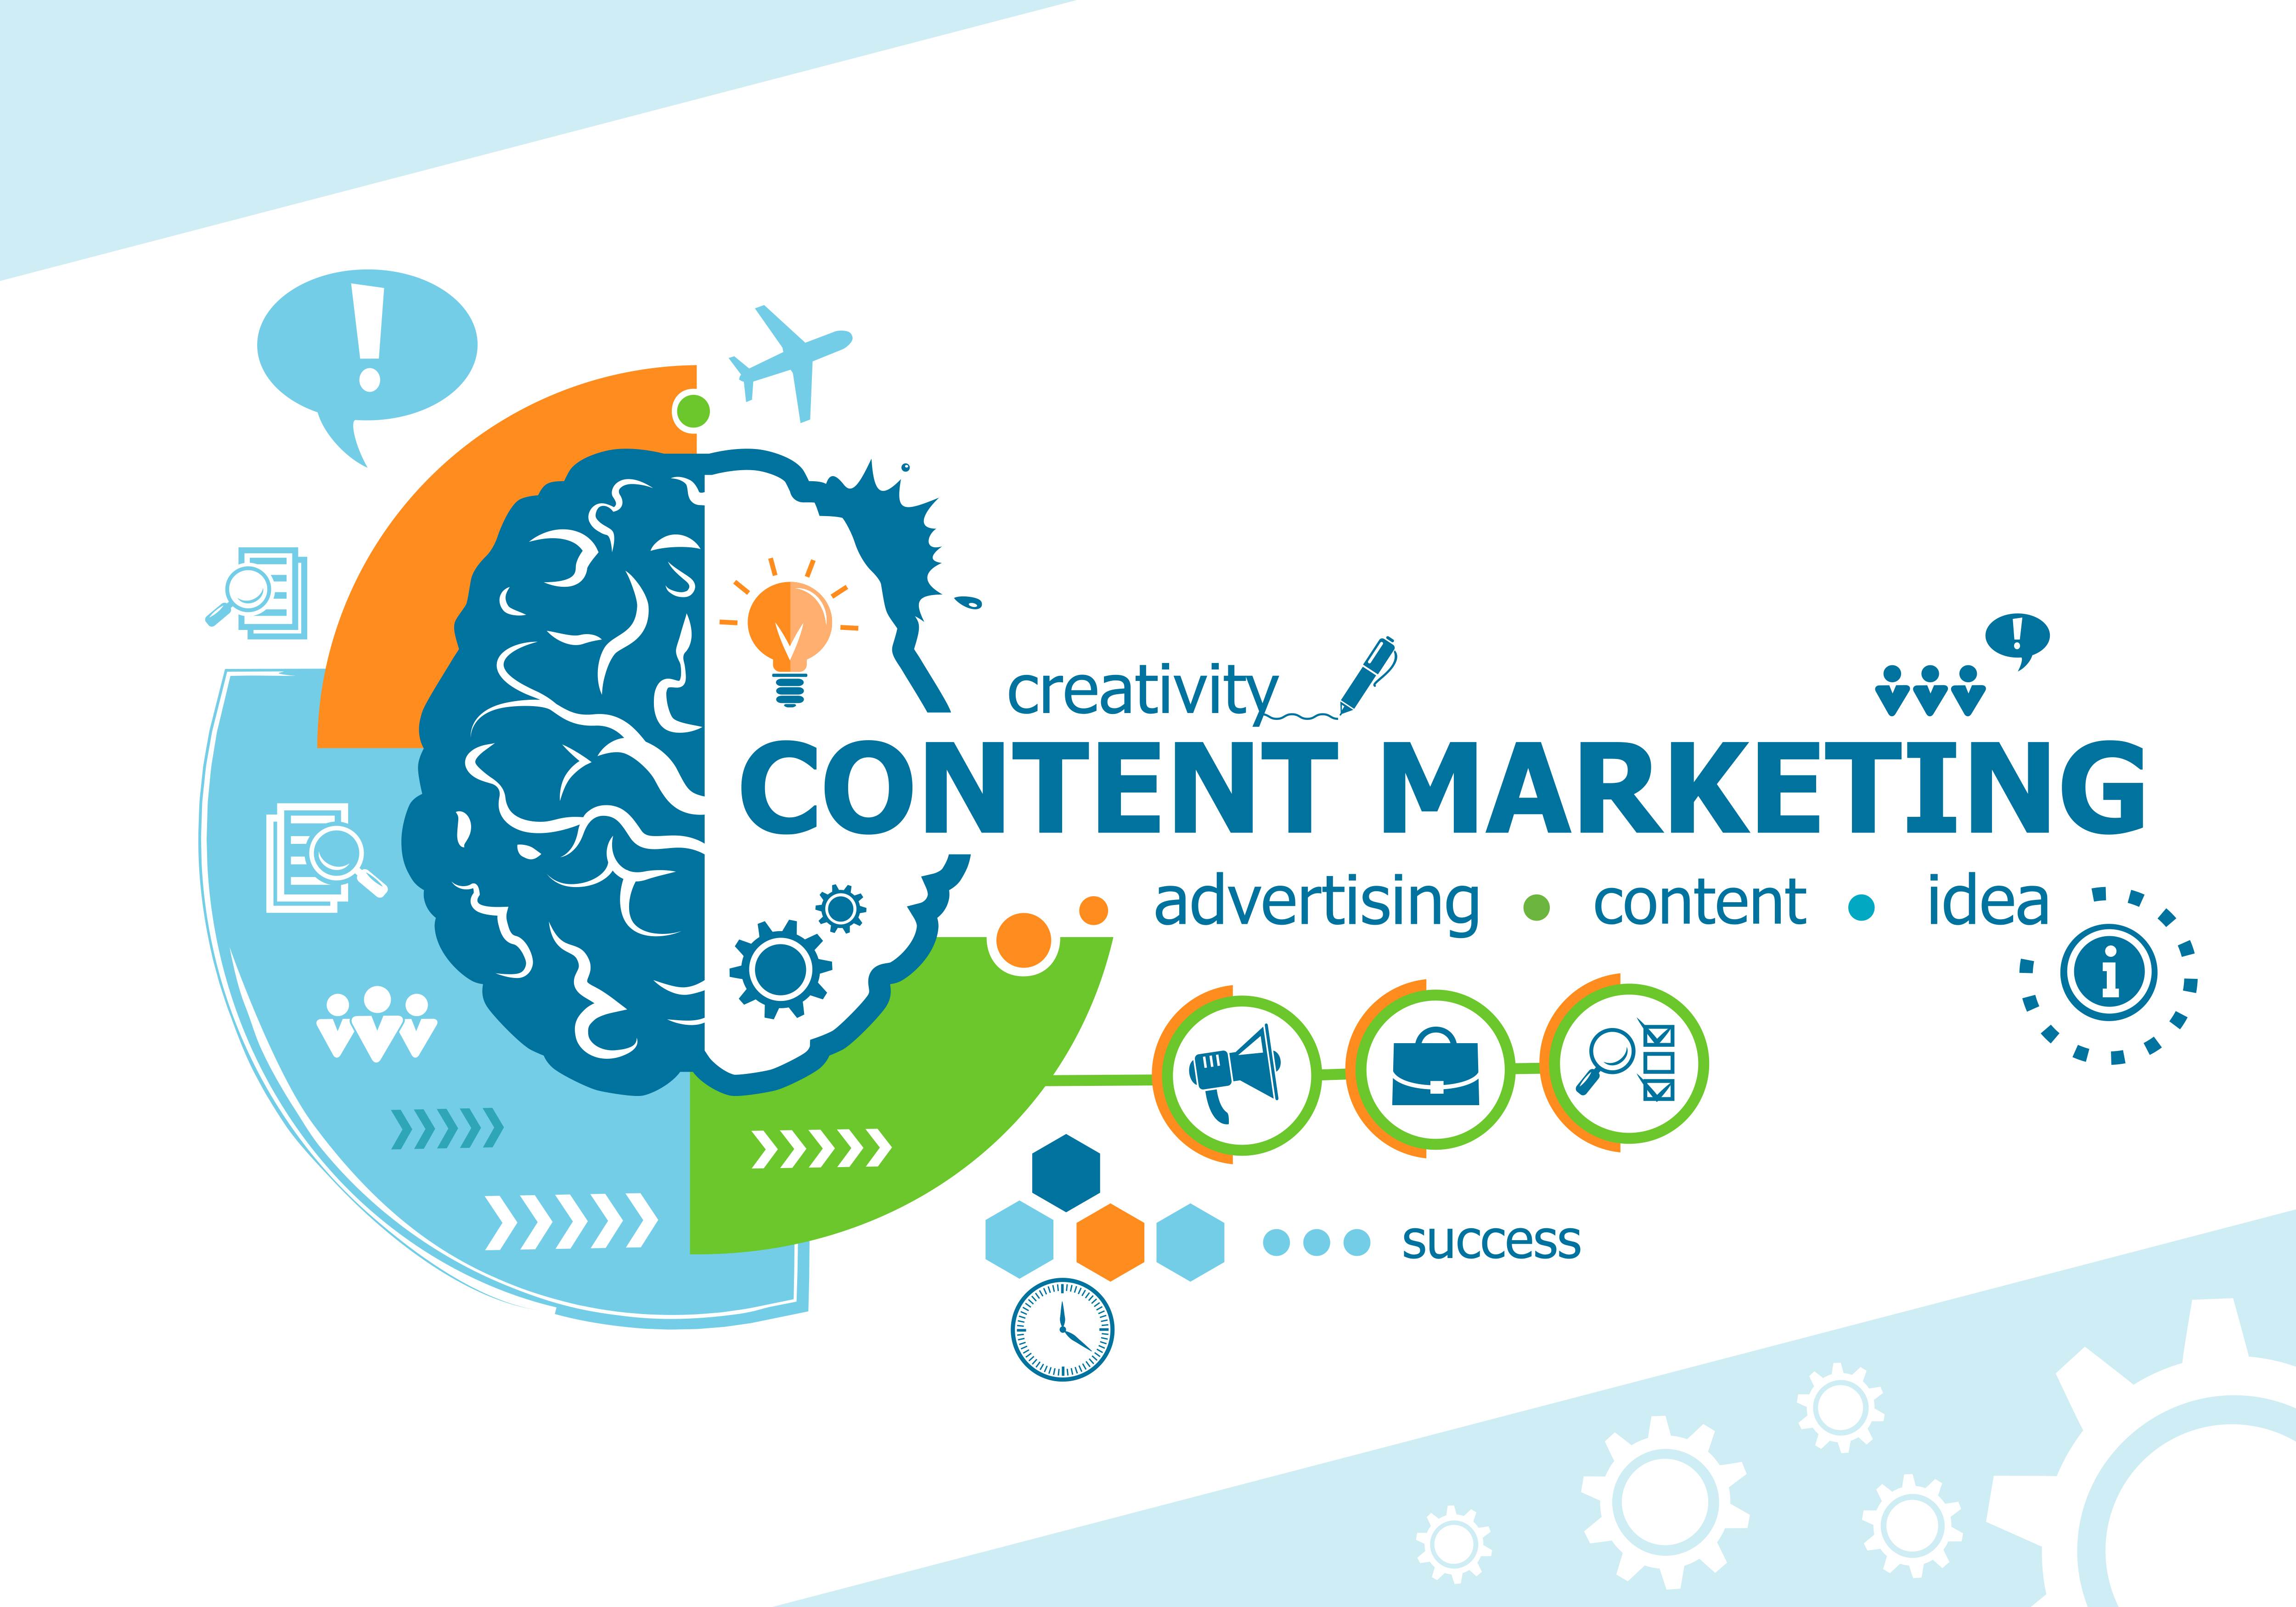 6 Types of Content and How to Make them Work for You